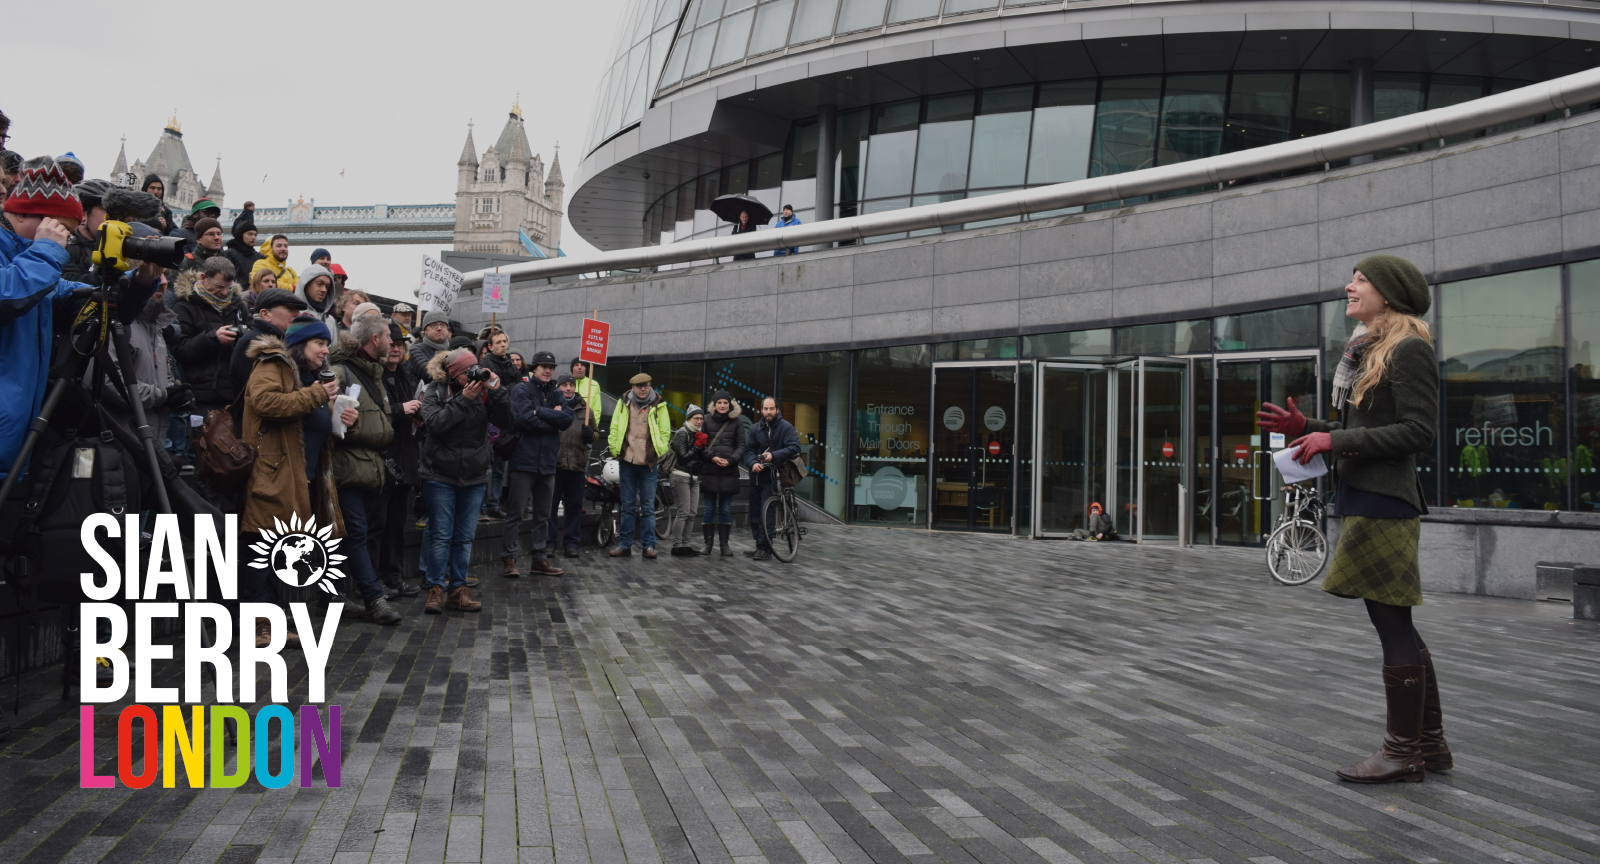 Sian Berry London - speaking outside City Hall